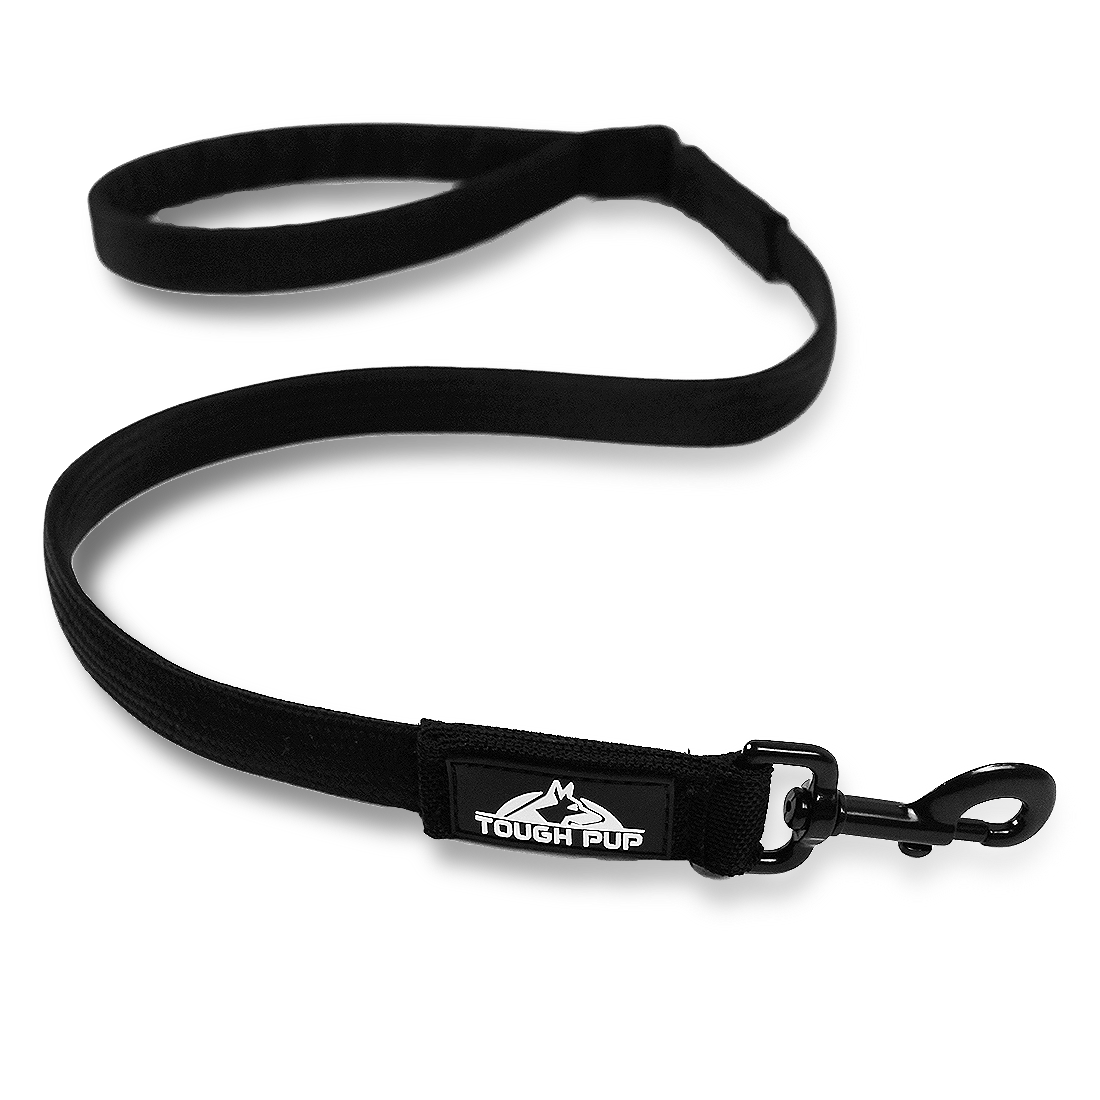 """NEW! The Freedom Flex Leash is here - Don't be """"walked by your dog"""" anymore!"""